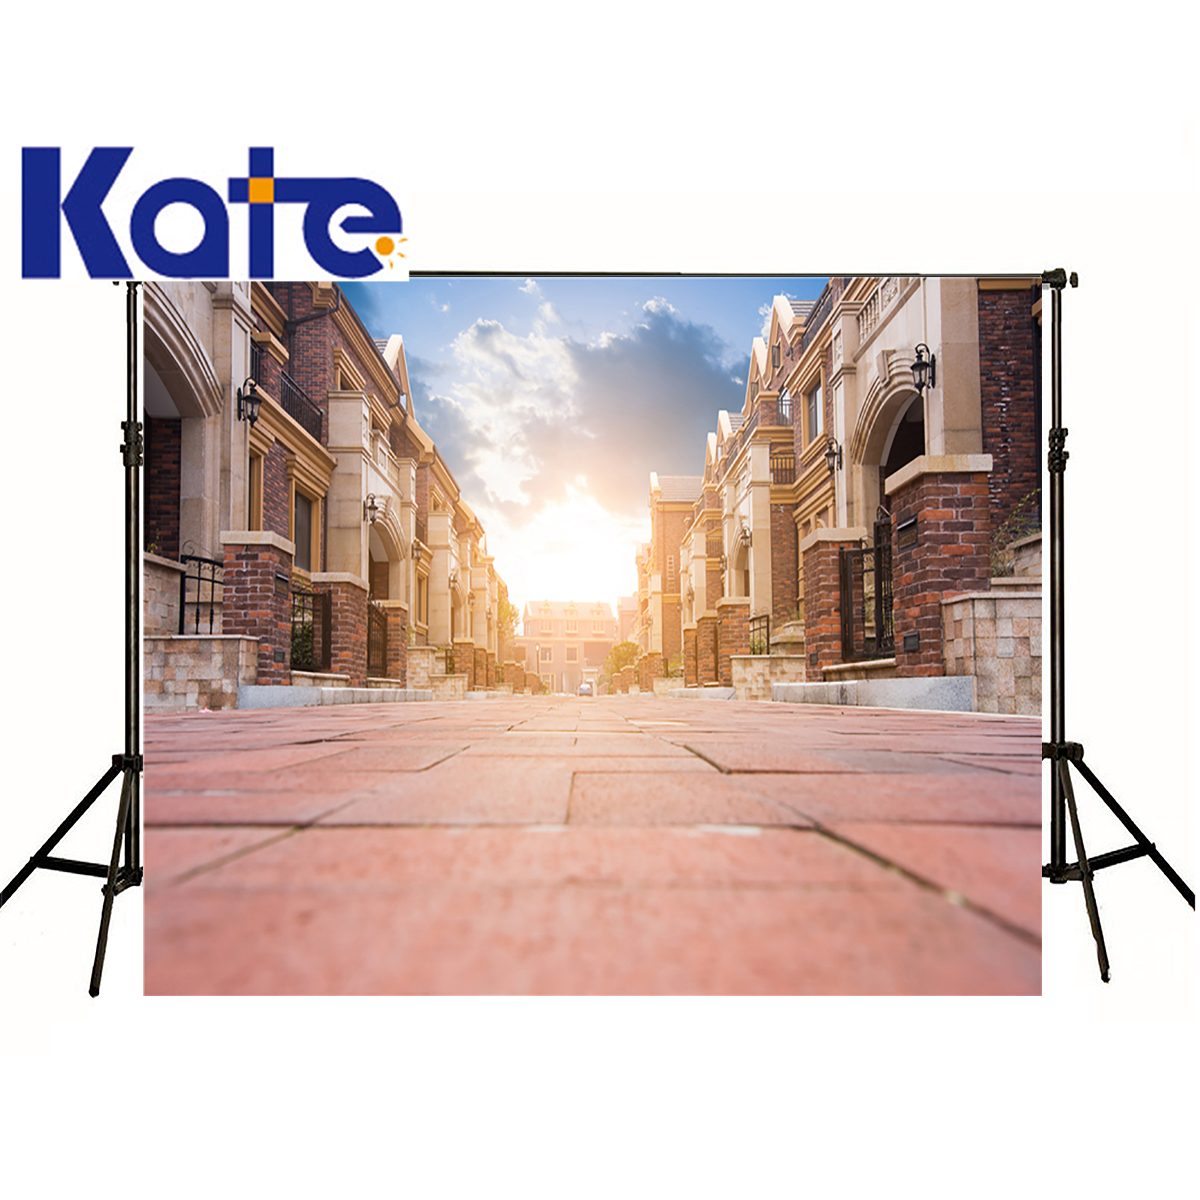 Kate City Photographic Background Building European Retro Street Sunlight Tiles Photocall Fabric Backdrops Boy Wedding сумка kate spade new york wkru2816 kate spade hanna